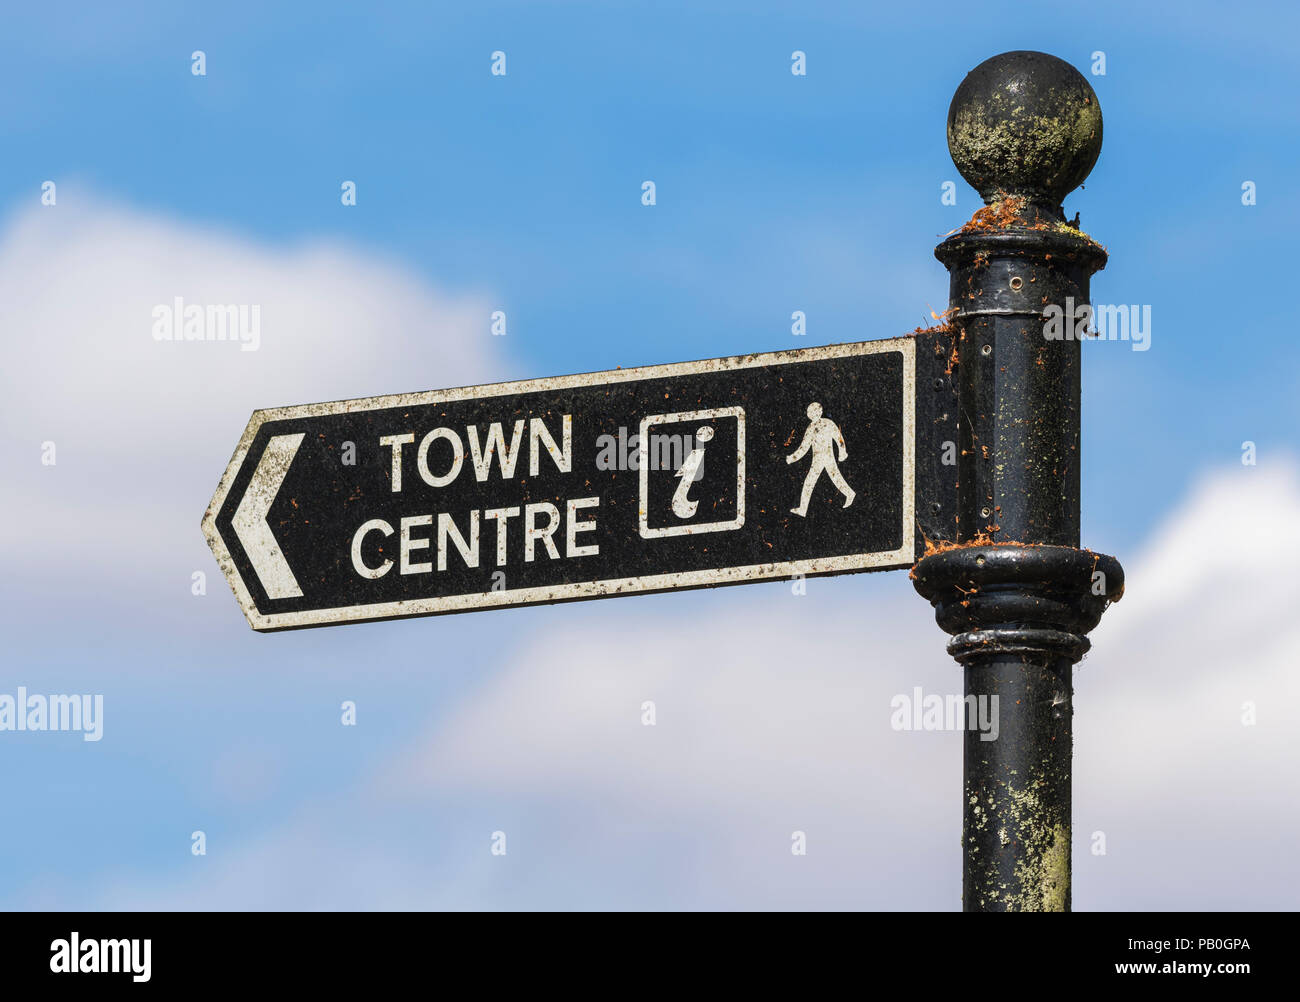 Old decaying and dirty British Town Centre sign. Town centre sign in England, UK. - Stock Image